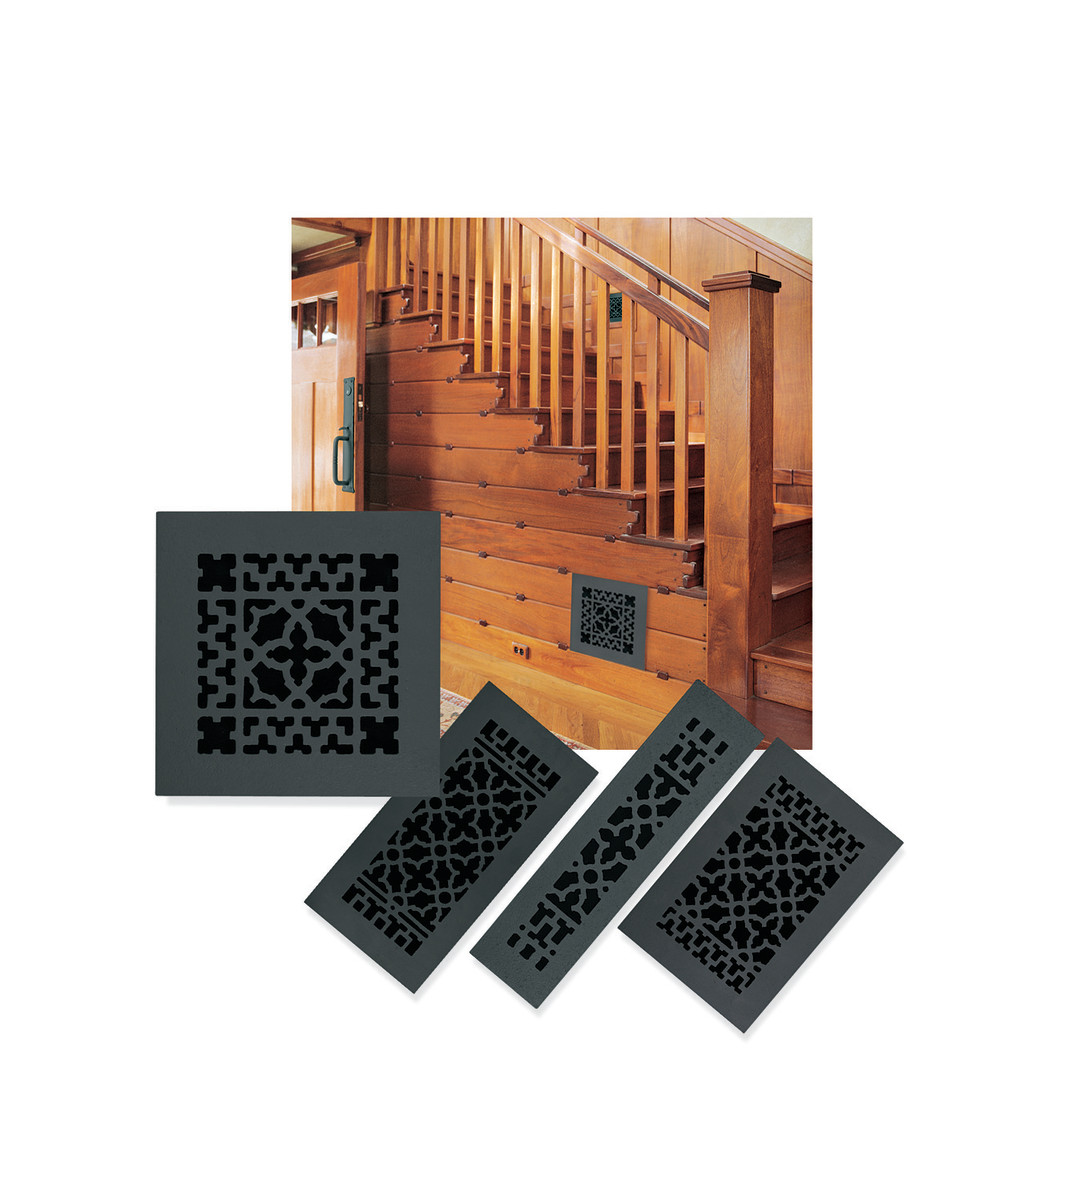 Dress up your Arts & Crafts interior with decorative cast iron grilles and registers like these by Acorn Manufacturing.